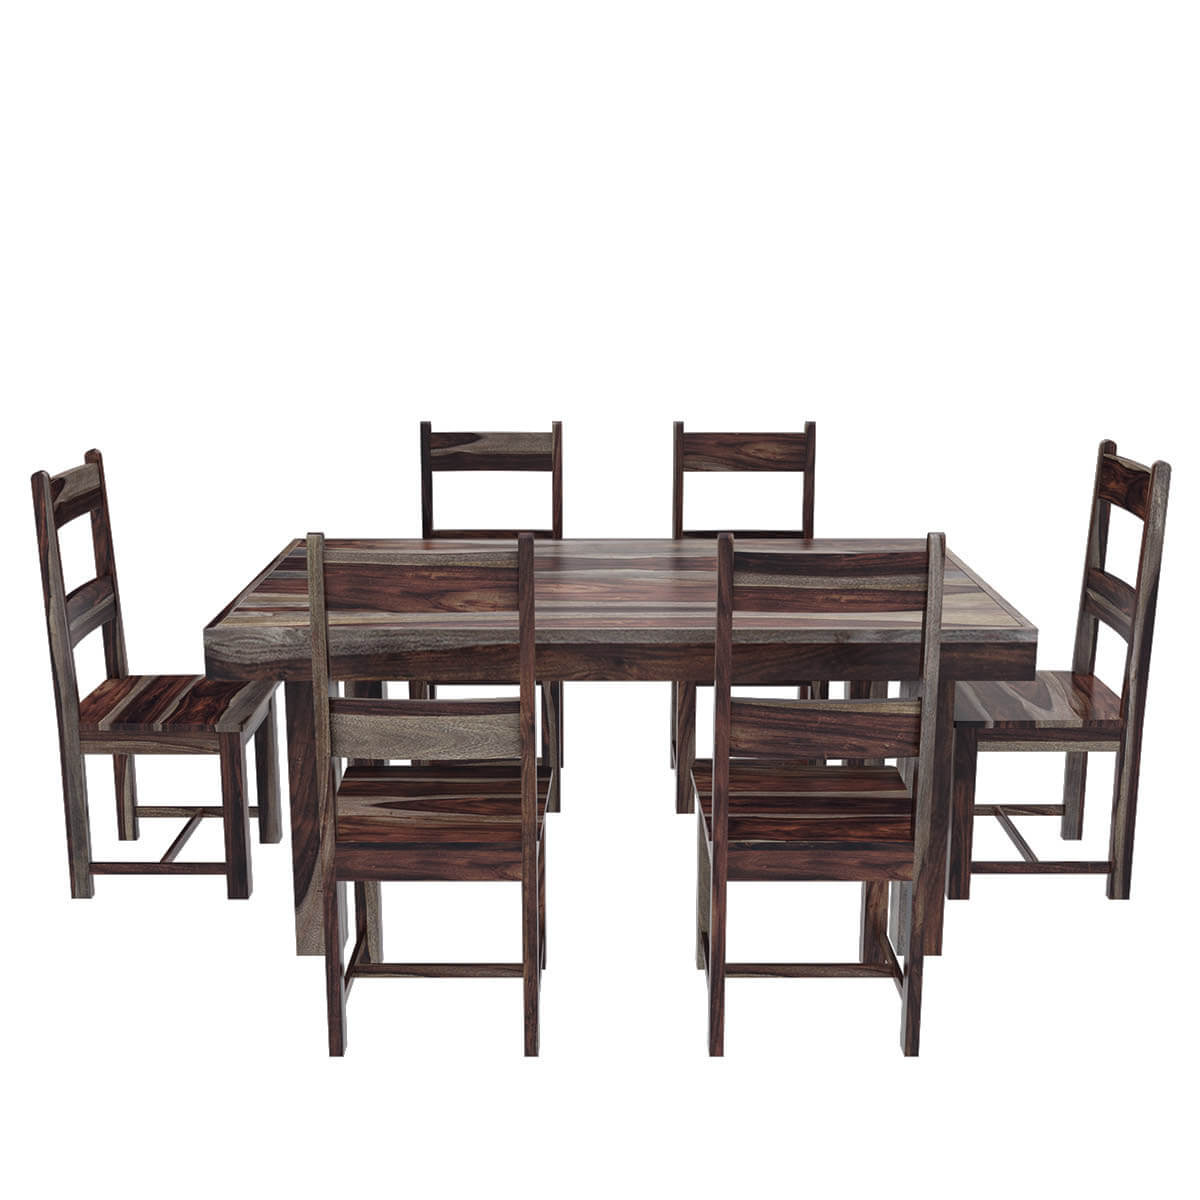 Frisco modern solid wood casual rustic dining room table for Dining room table sets